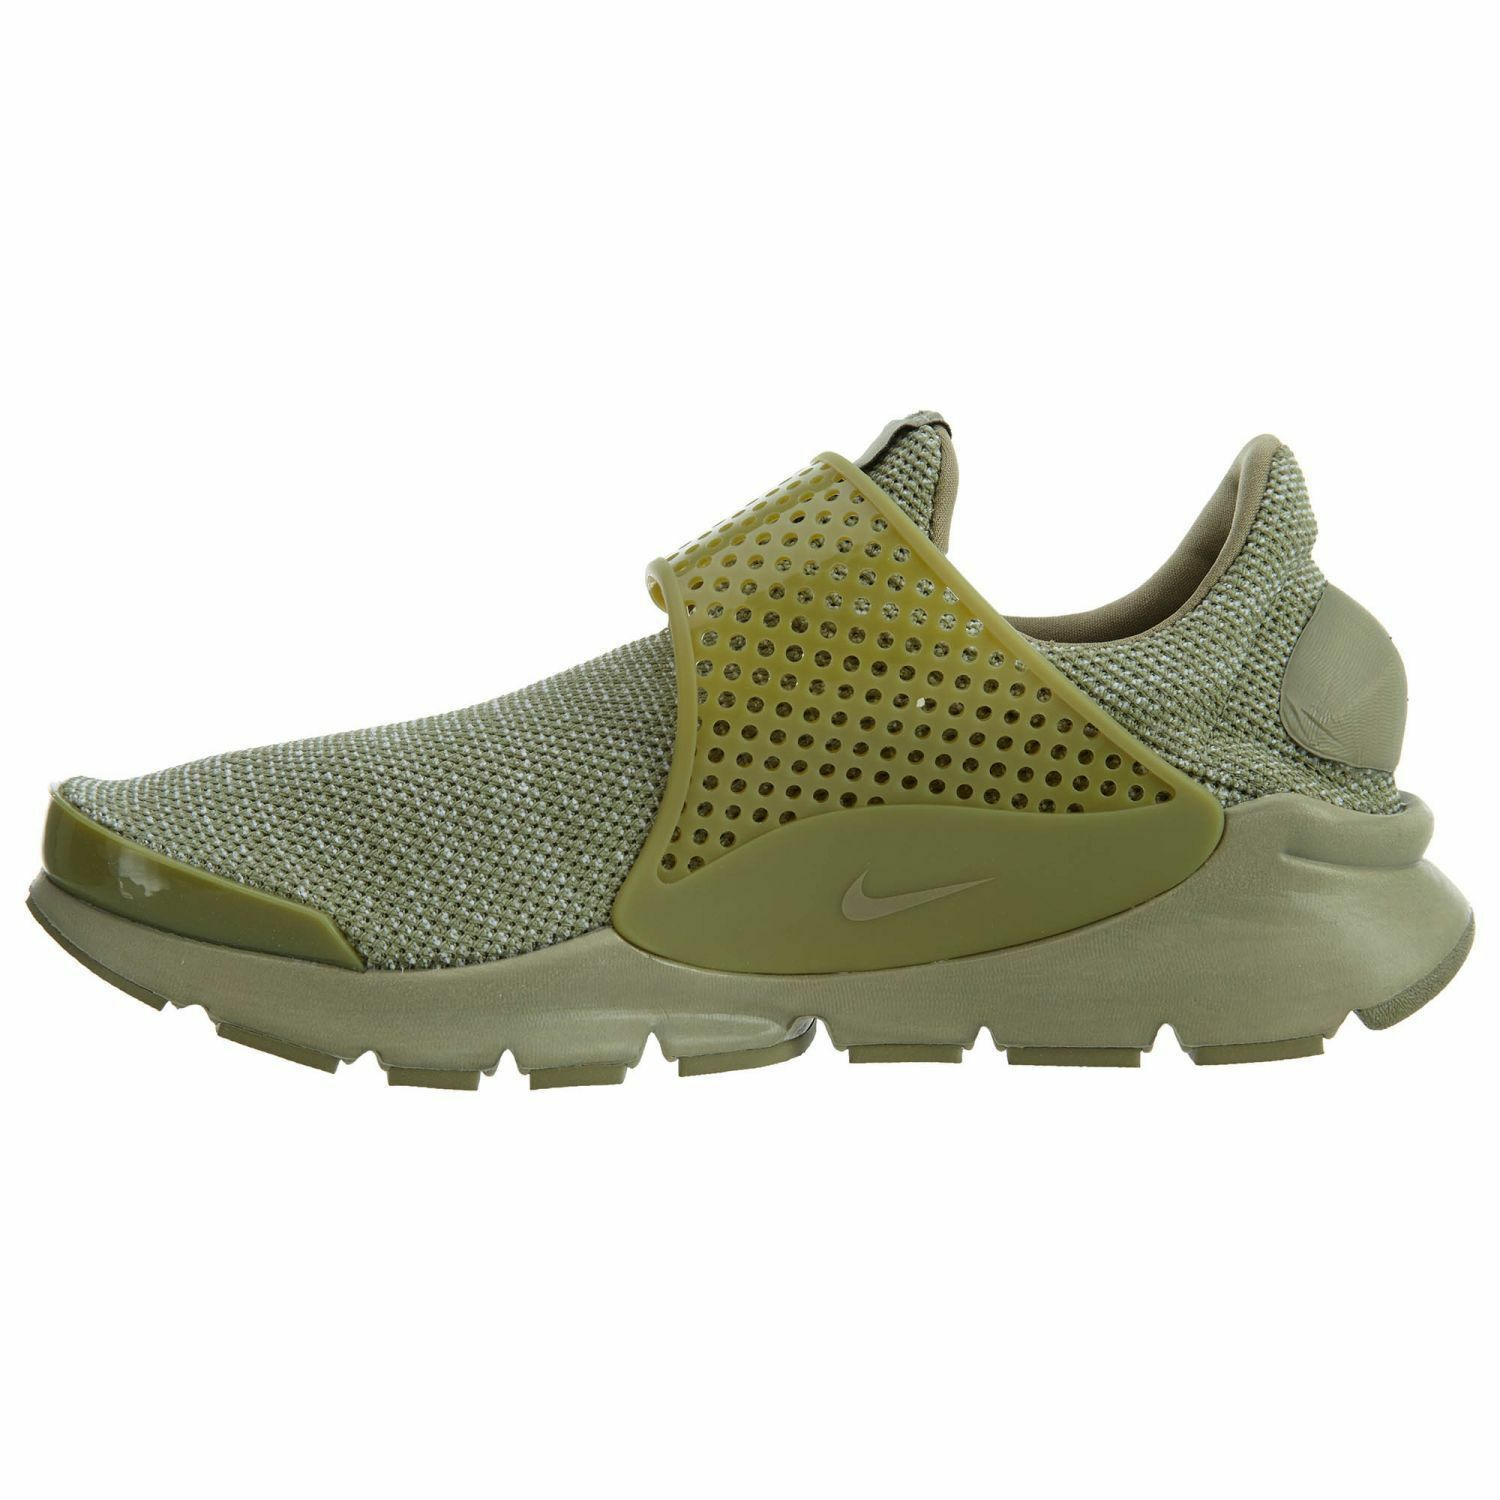 Nike Sock Dart BR Mens 909551-200 Trooper Green Knit Knit Knit Running shoes Size 8 1f6872